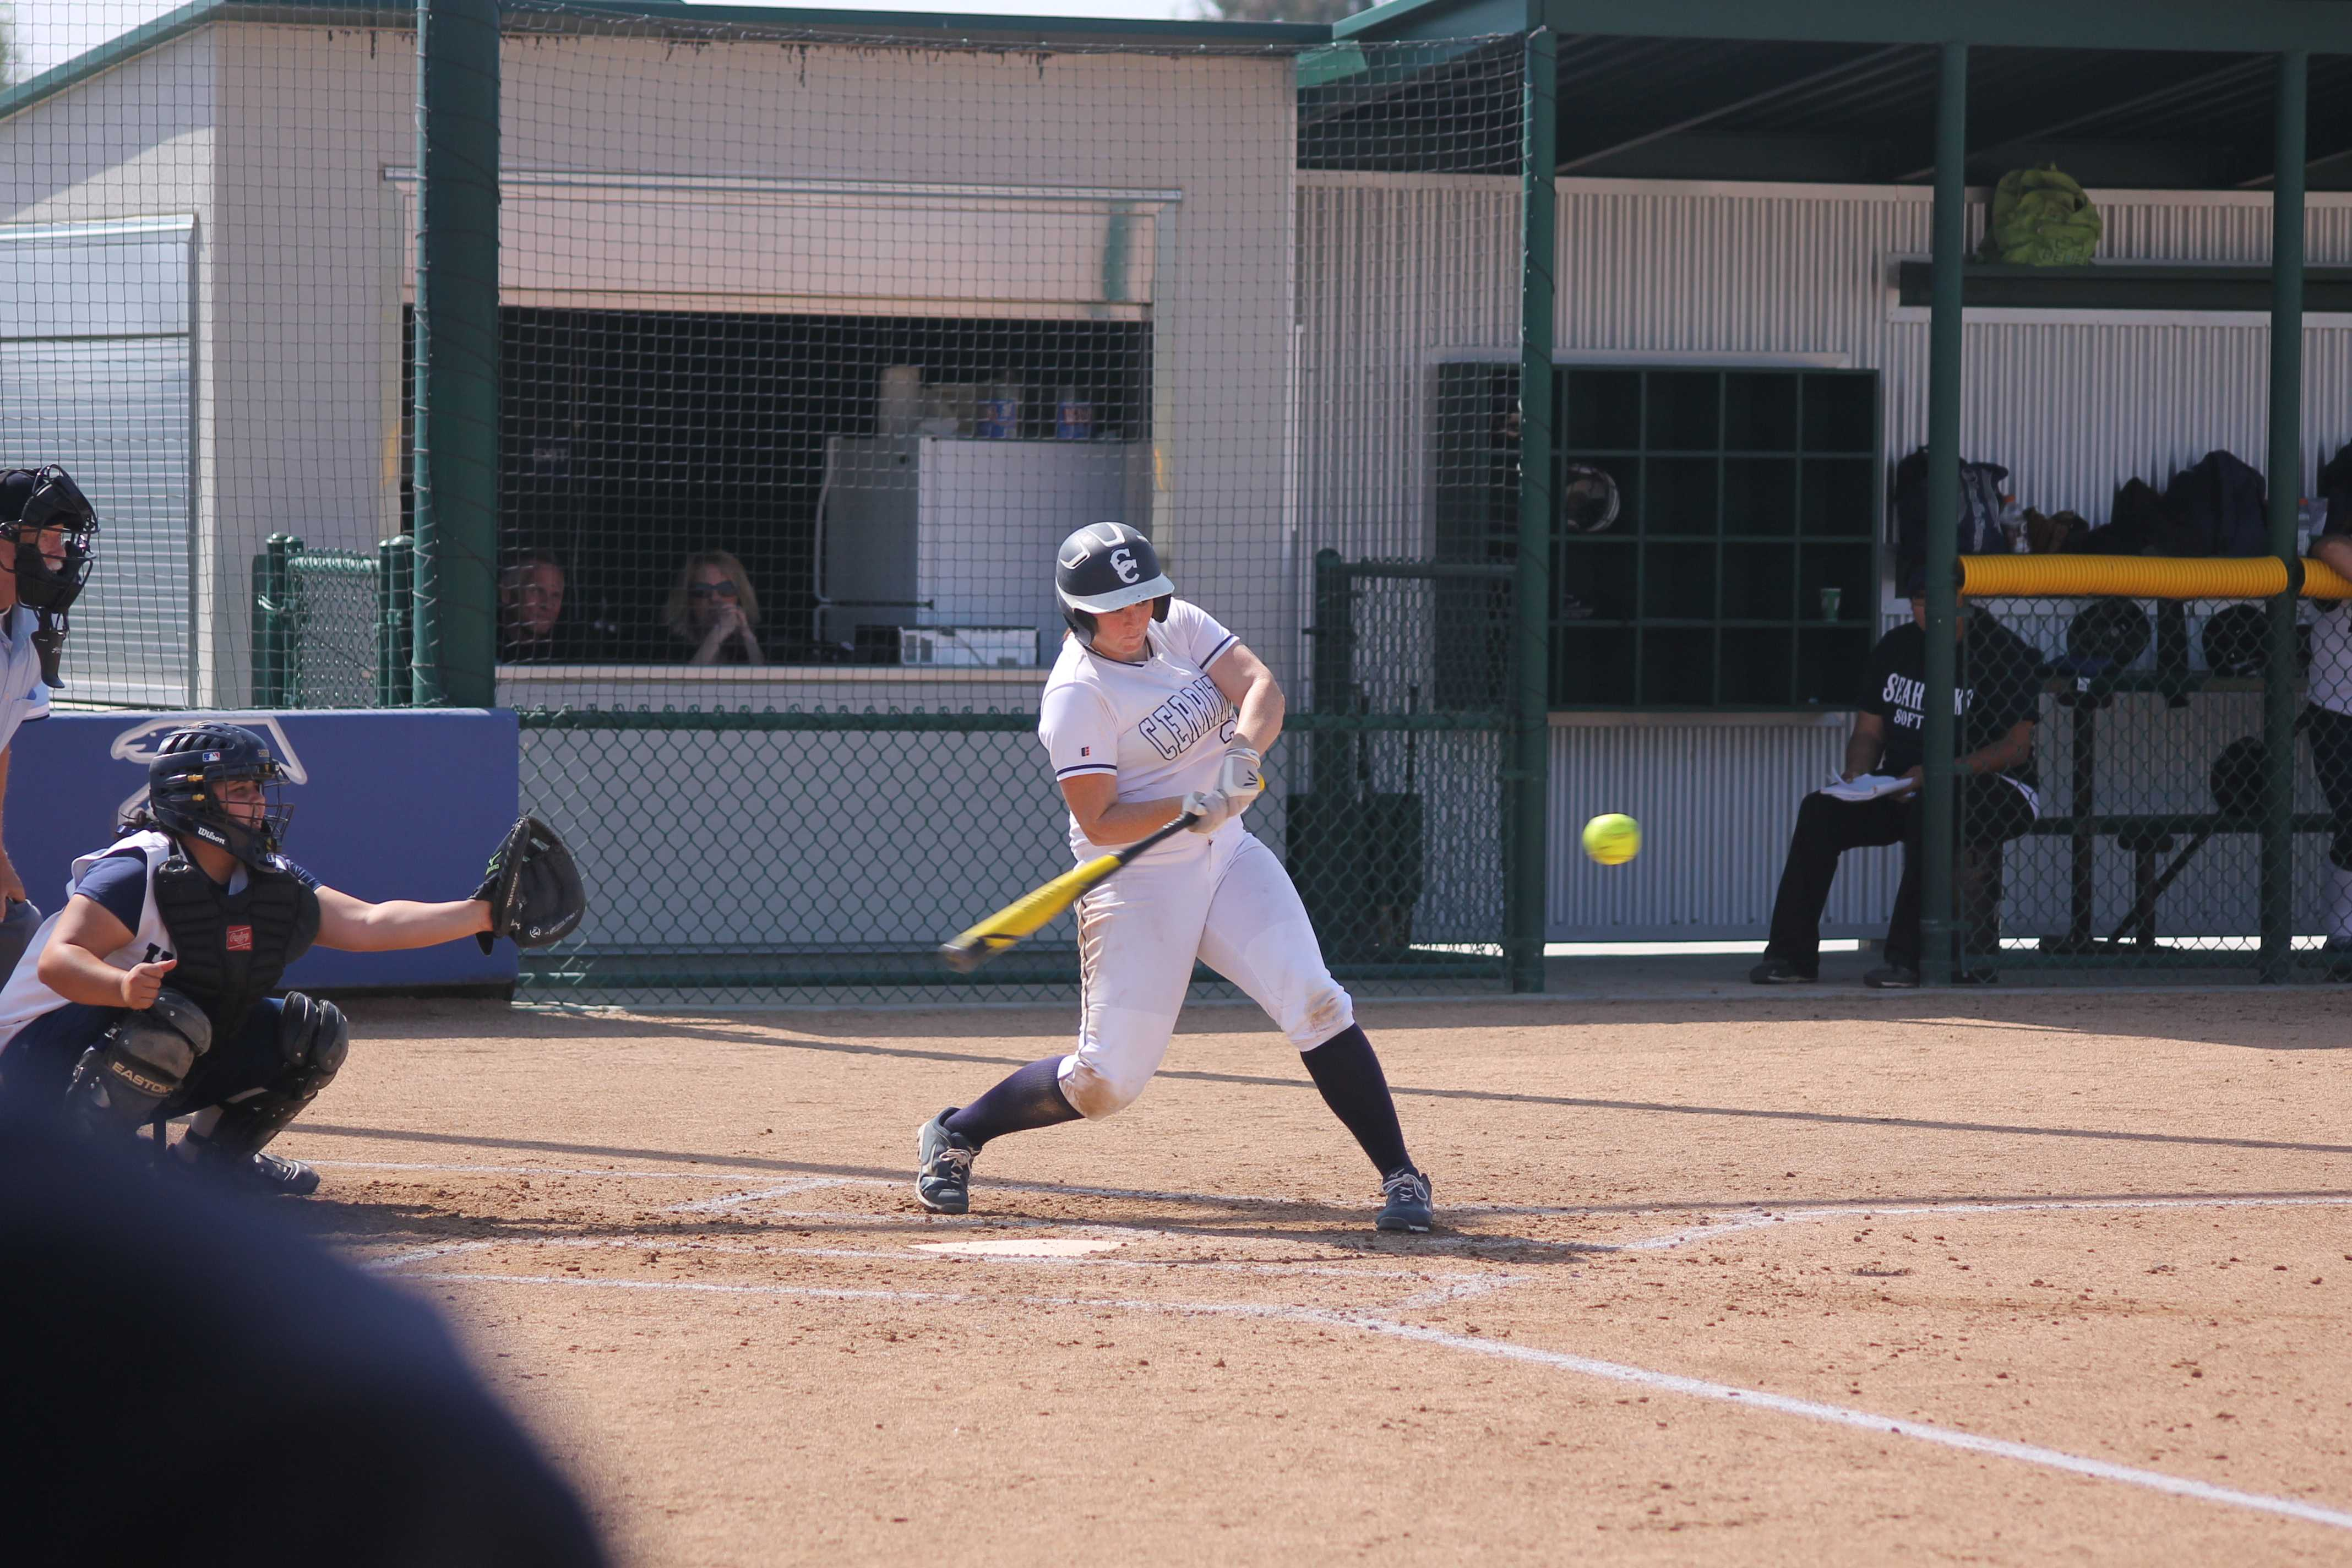 Falcons first basemen Haley Whitney connects on an RBI double on April 22. Photo credit: Mario Jimenez